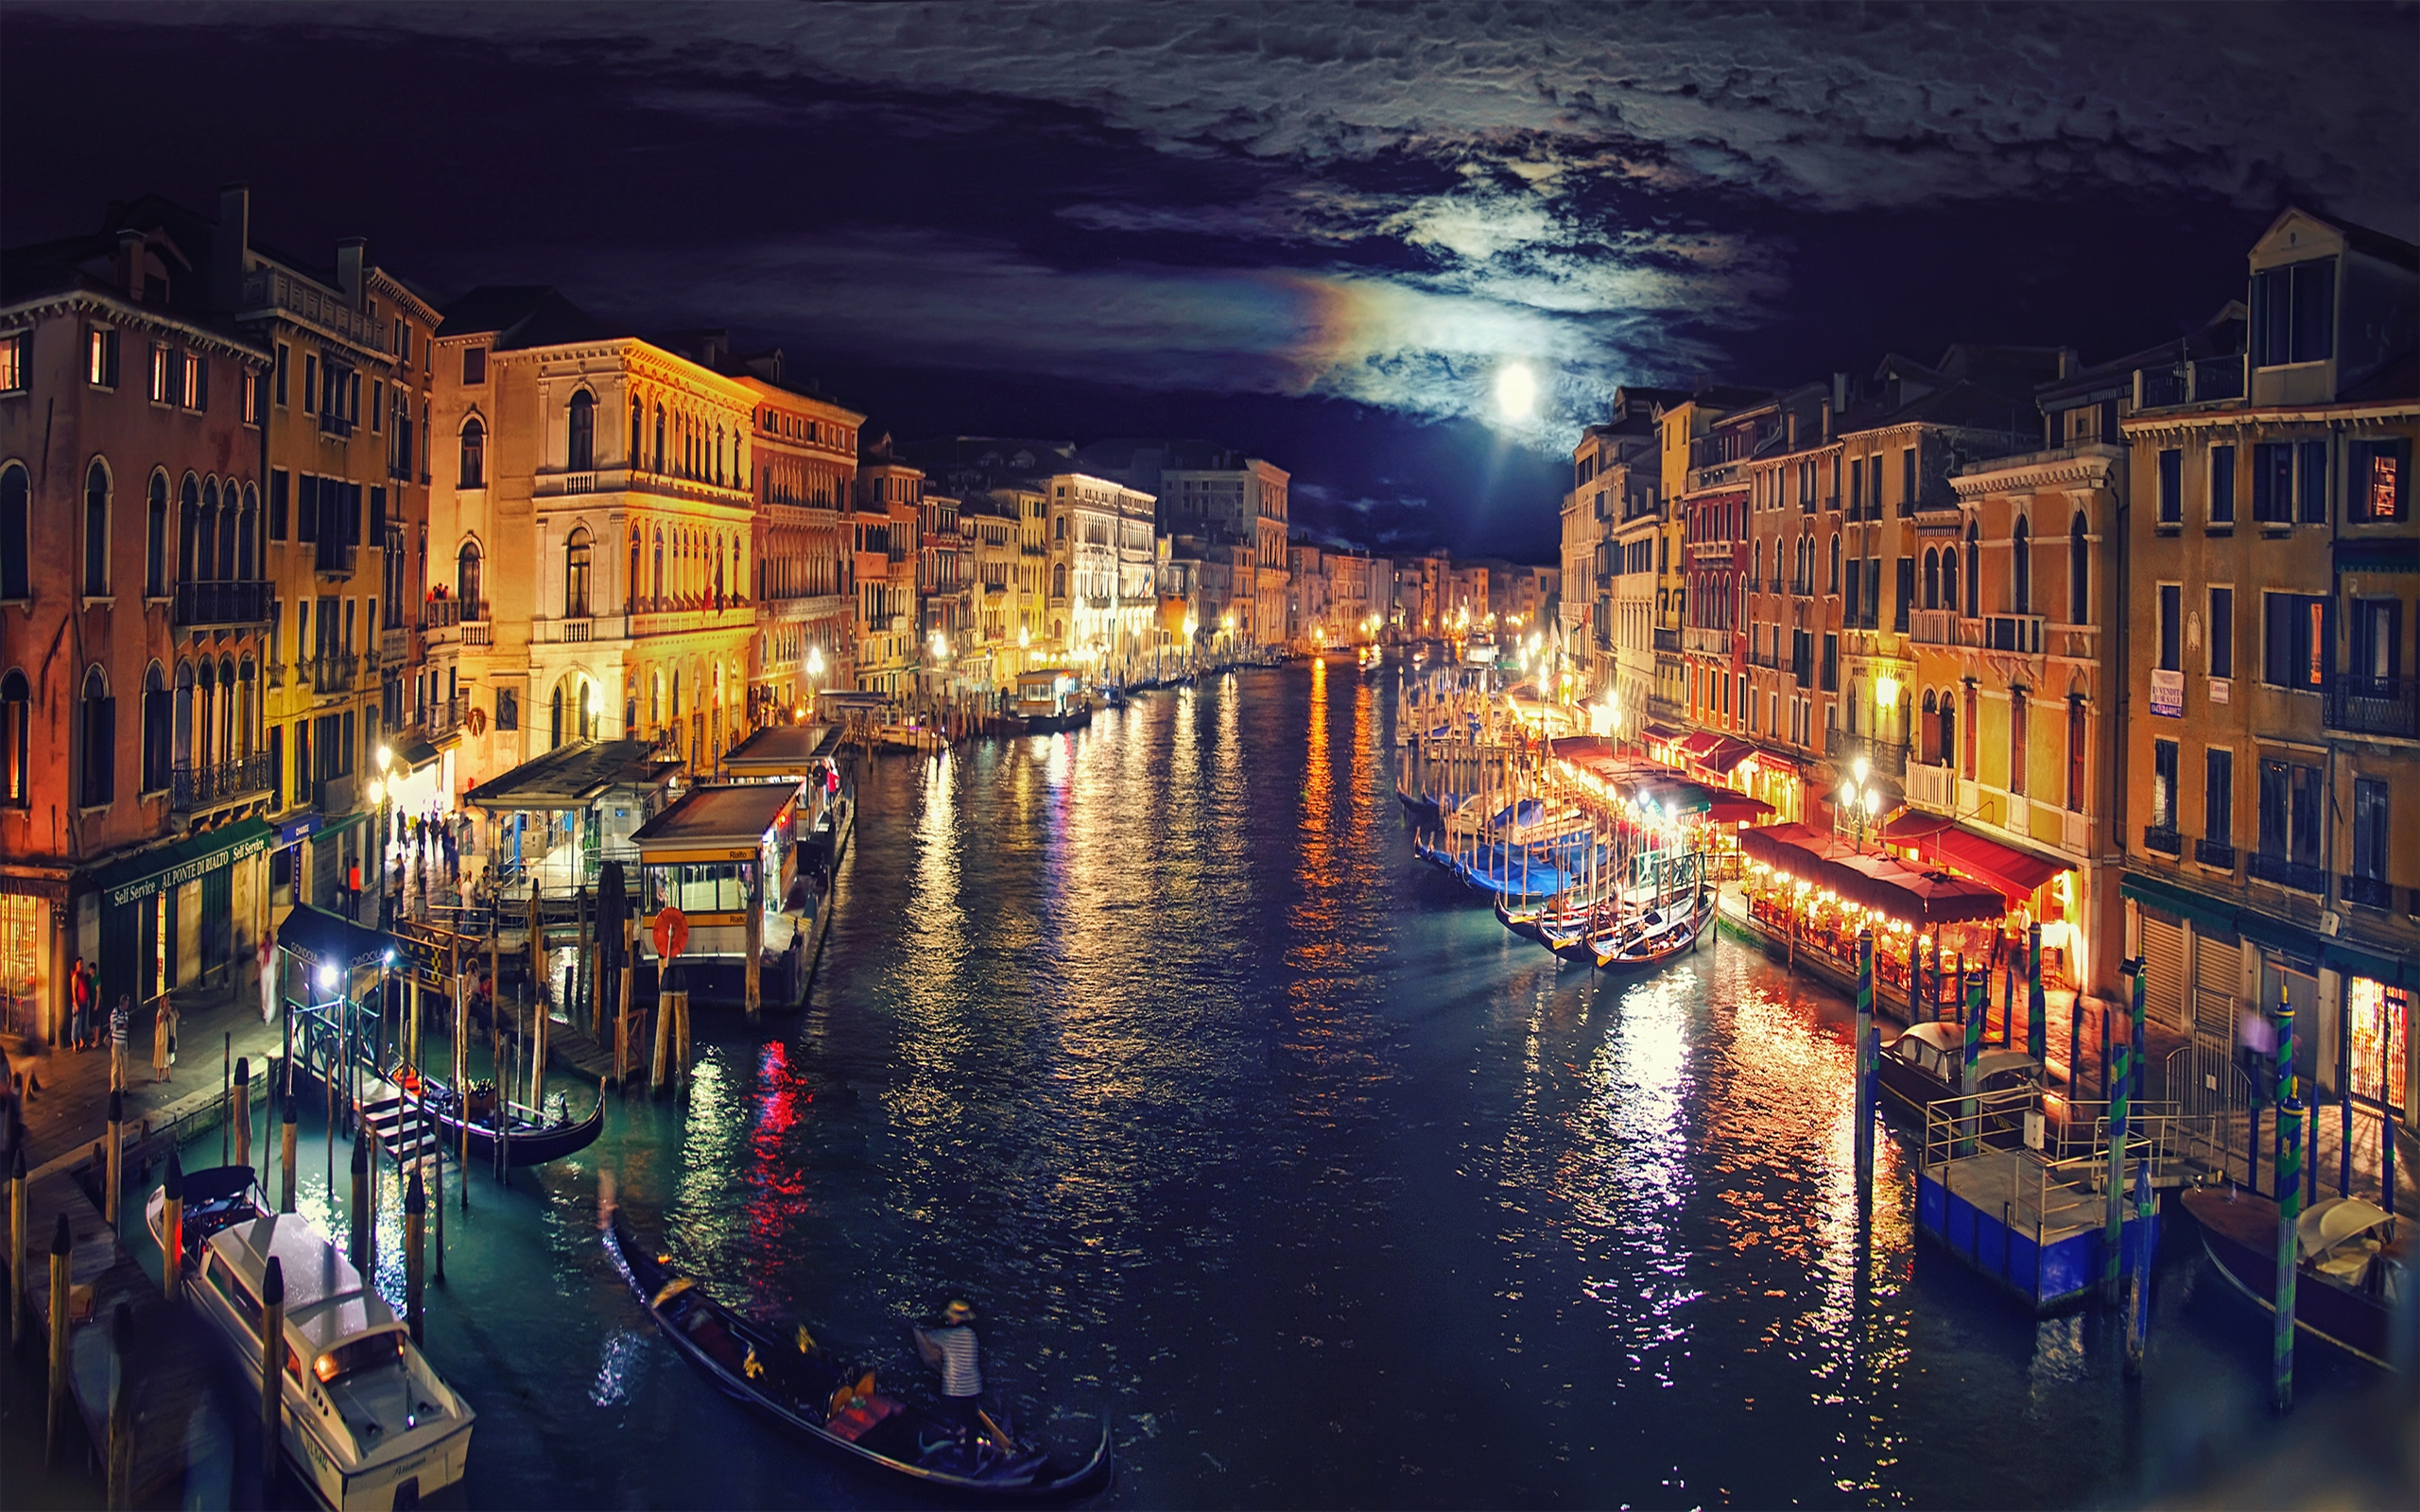 Iphone Lock Screen Wallpaper Hd Italy Venice Grand Canal Night Reflection 5421